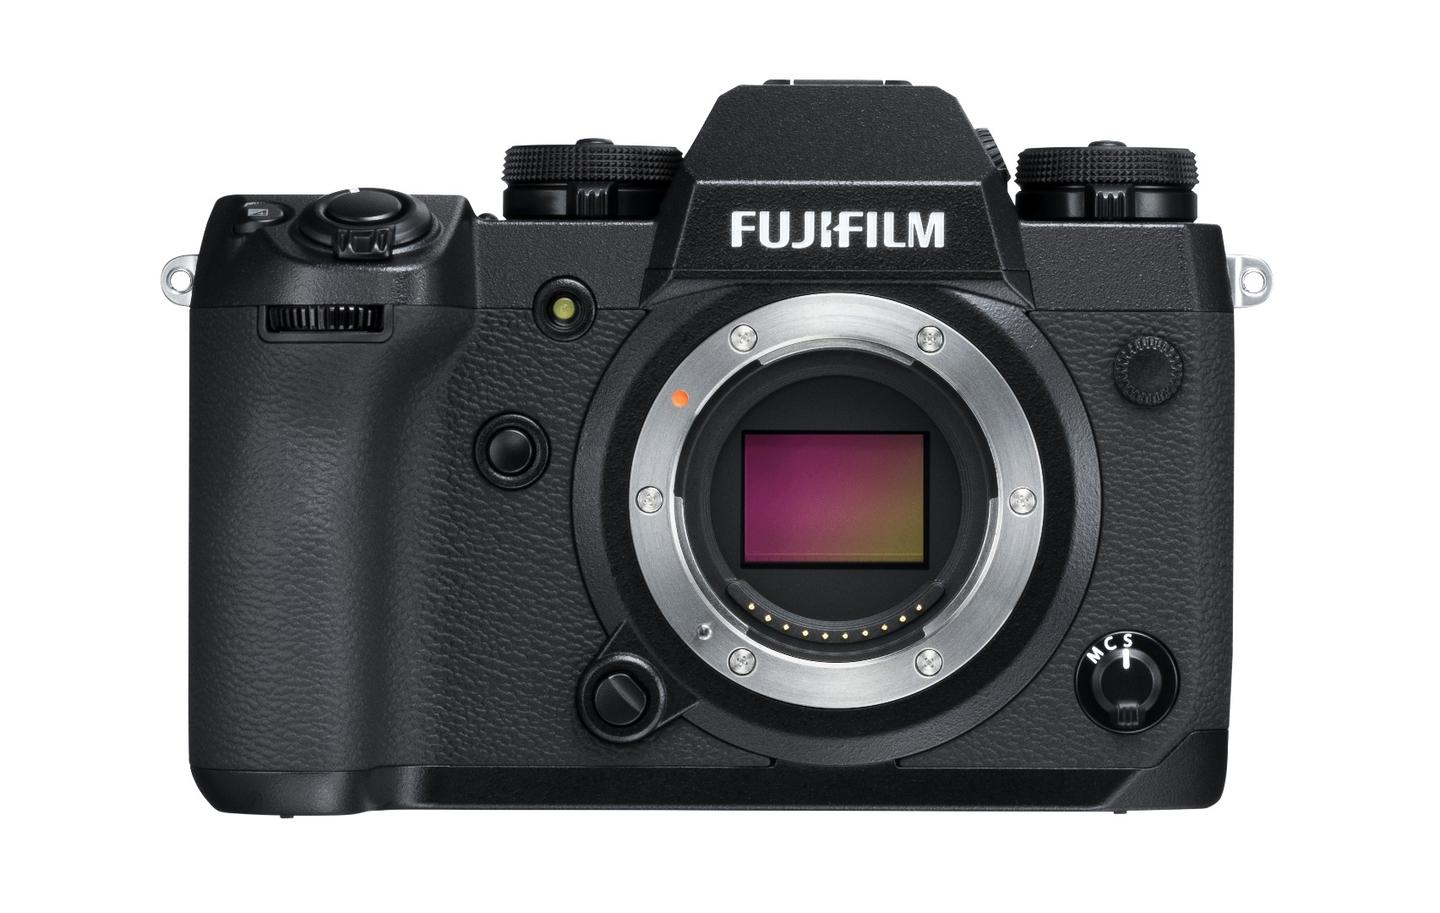 The Fujifilm X-H1 featuresa 24.3 megapixel APS-C (23.5 x 15.6 mm) X-Trans CMOS III sensor paired with an X-Processor Pro image processing engine